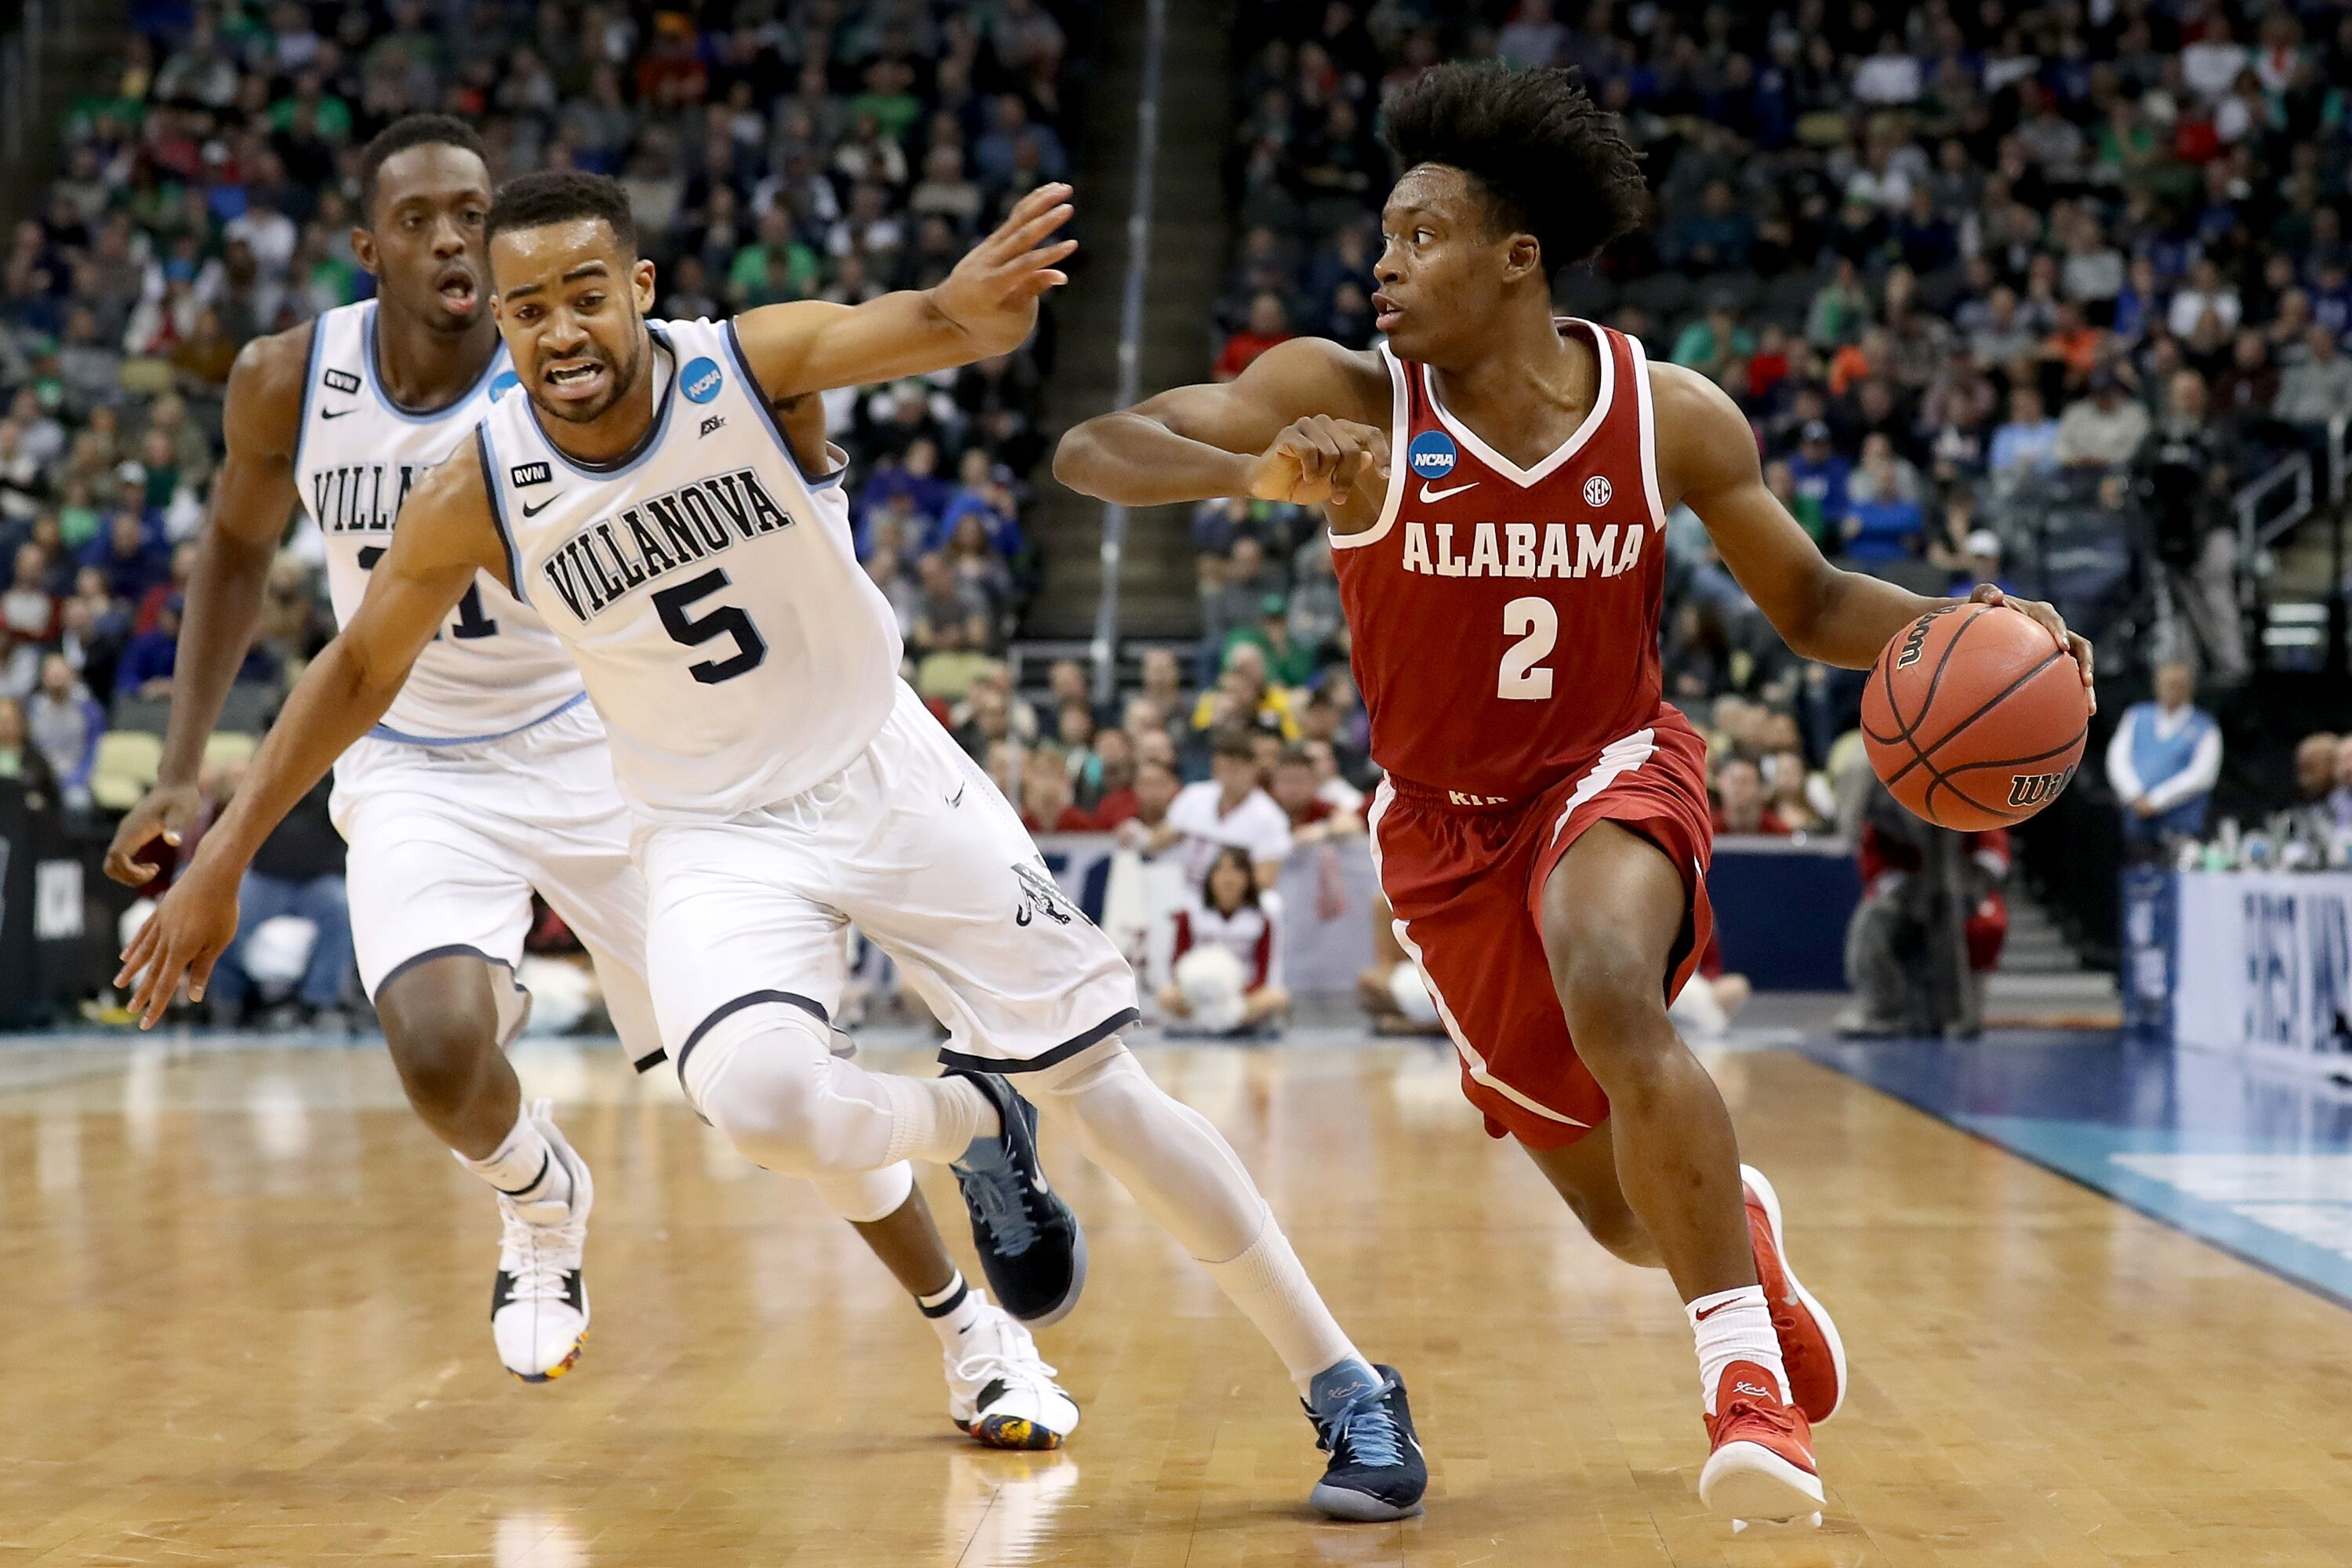 933059300-alabama-v-villanova.jpg